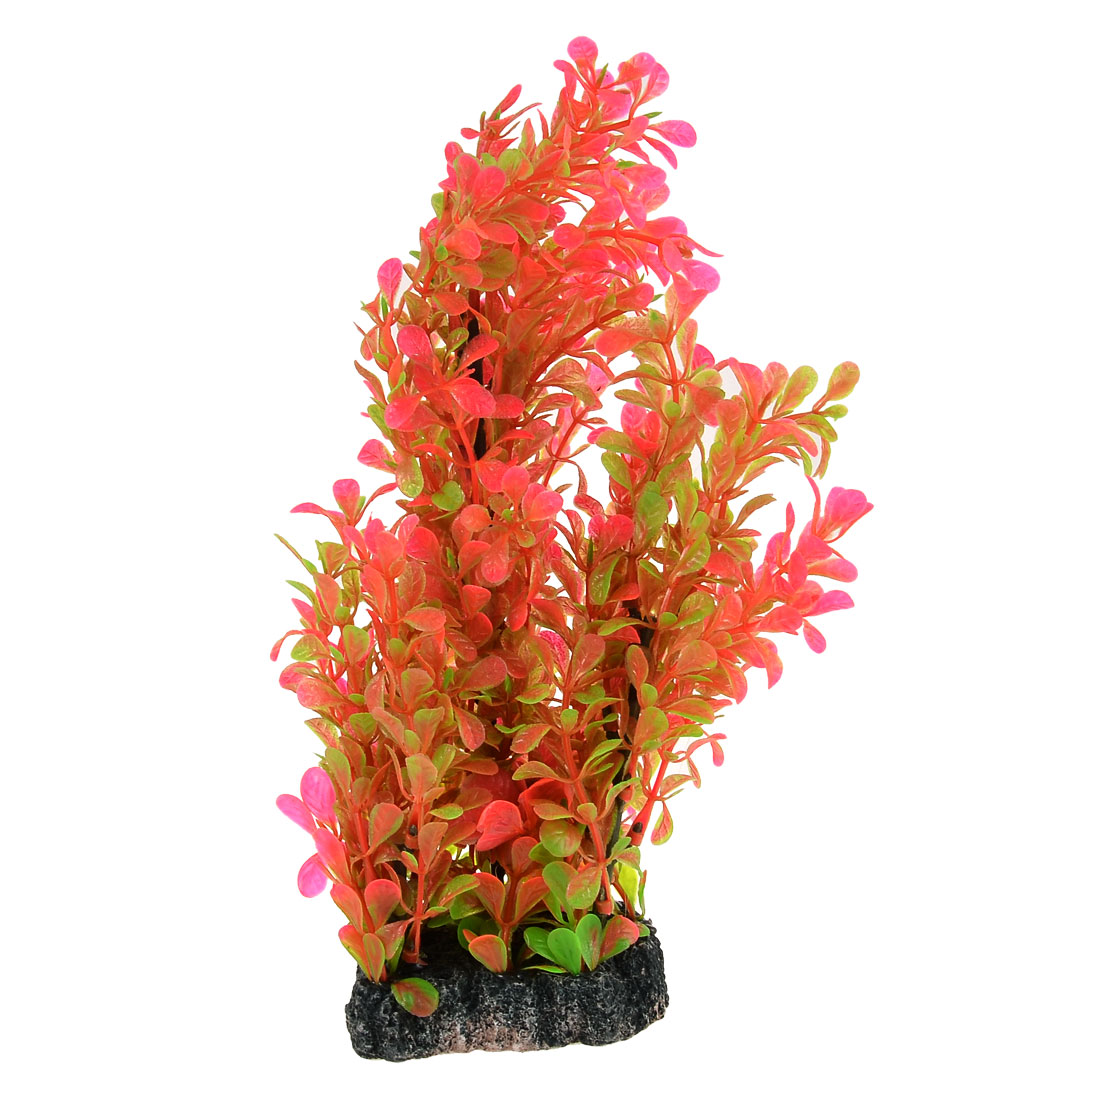 Fish Tank Aquarium Plastic Plant Landscape Underwater Grass Ornament